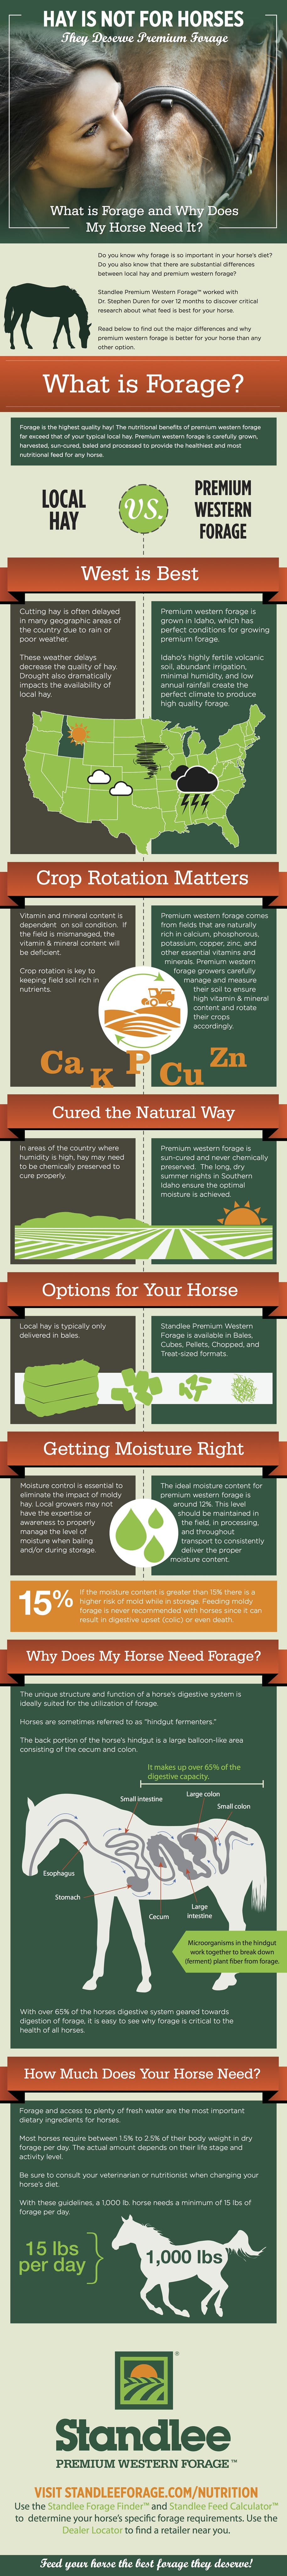 Hay is Not for Horses; They Deserve Premium Forage